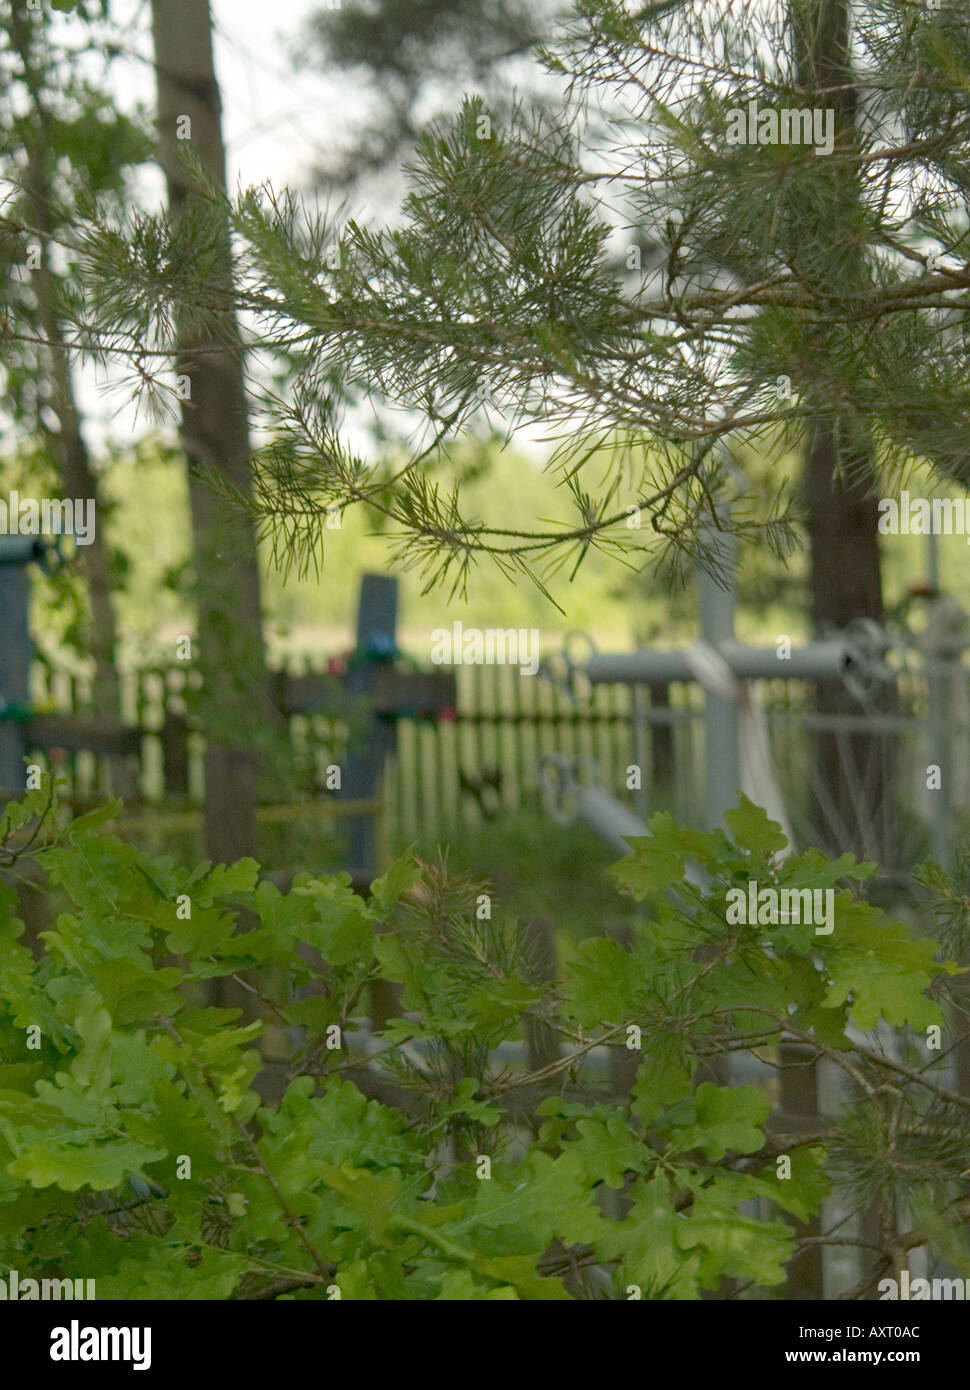 In focus foliage and tree branches with out of focus crosses behind in graveyard, Chernobyl nuclear exclusion zone Ukraine Belarus border - Stock Image